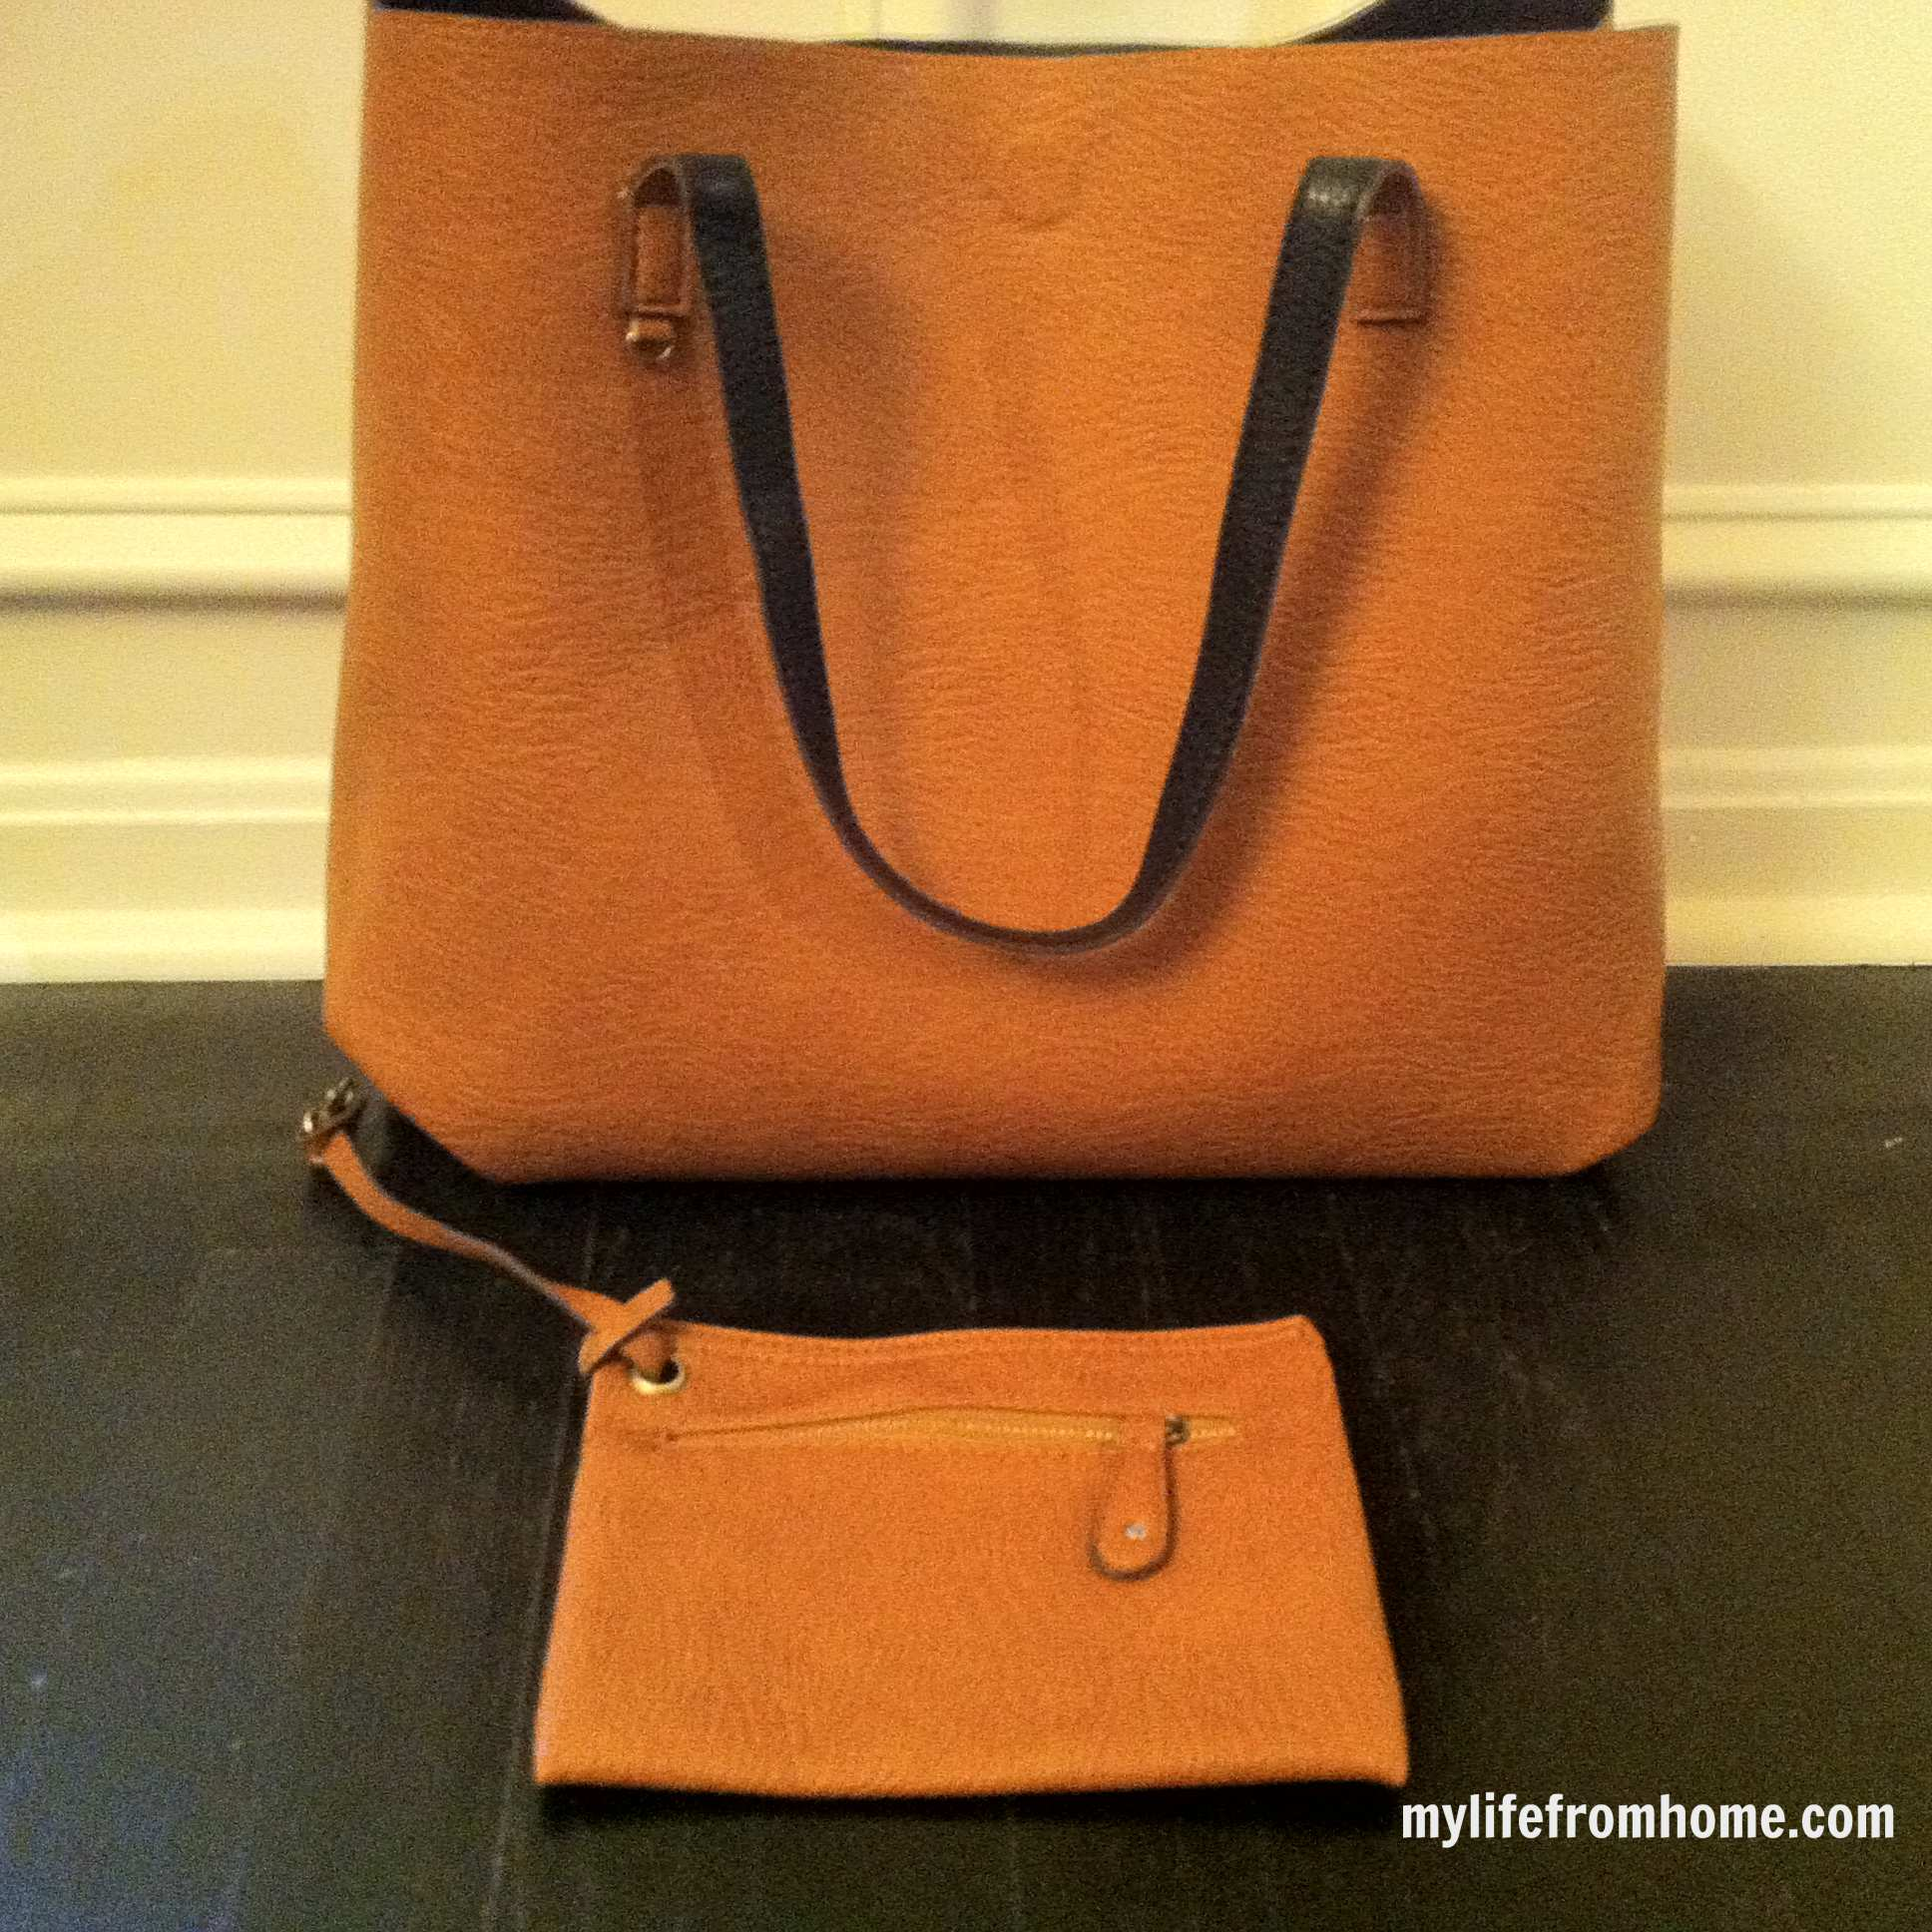 Cognac side of the reversible tote